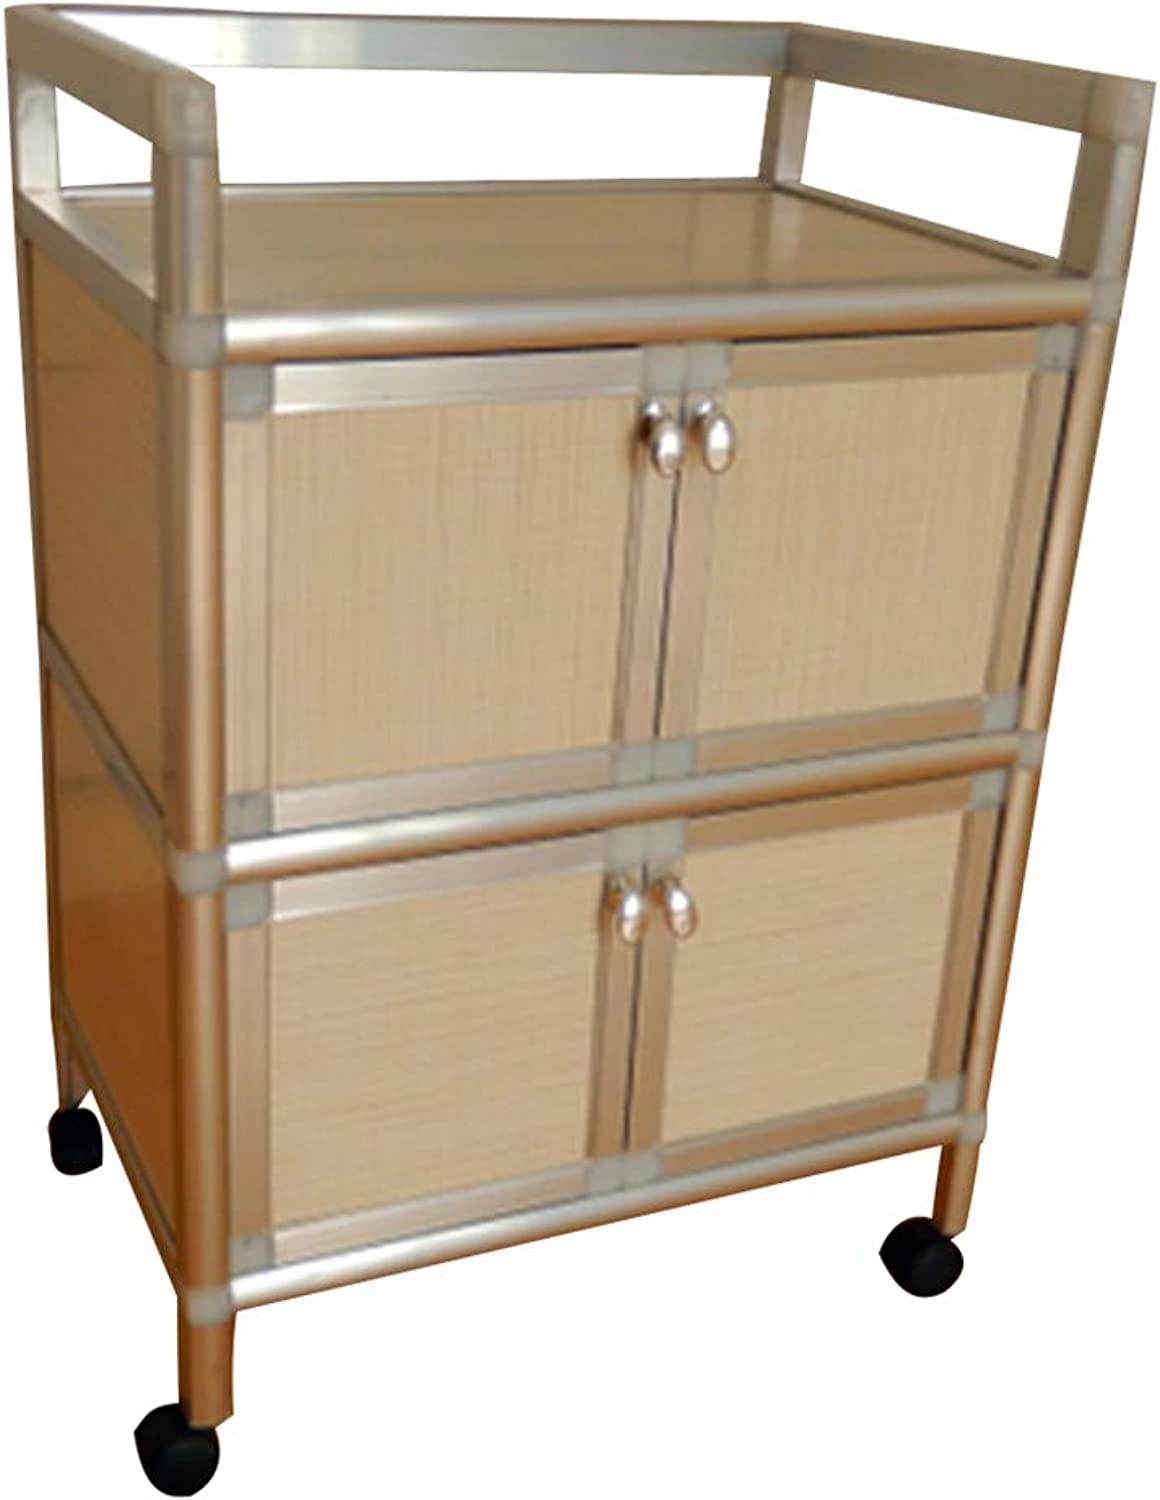 Serving Trolley Cart Mobile Kitchen Stainless Steel Solid Wood Square Double Storey Locker Universal Wheel 3 Tier Storage, Carrying Capacity 40 Kg (color   White, Size   49 x 33 x 71 cm)